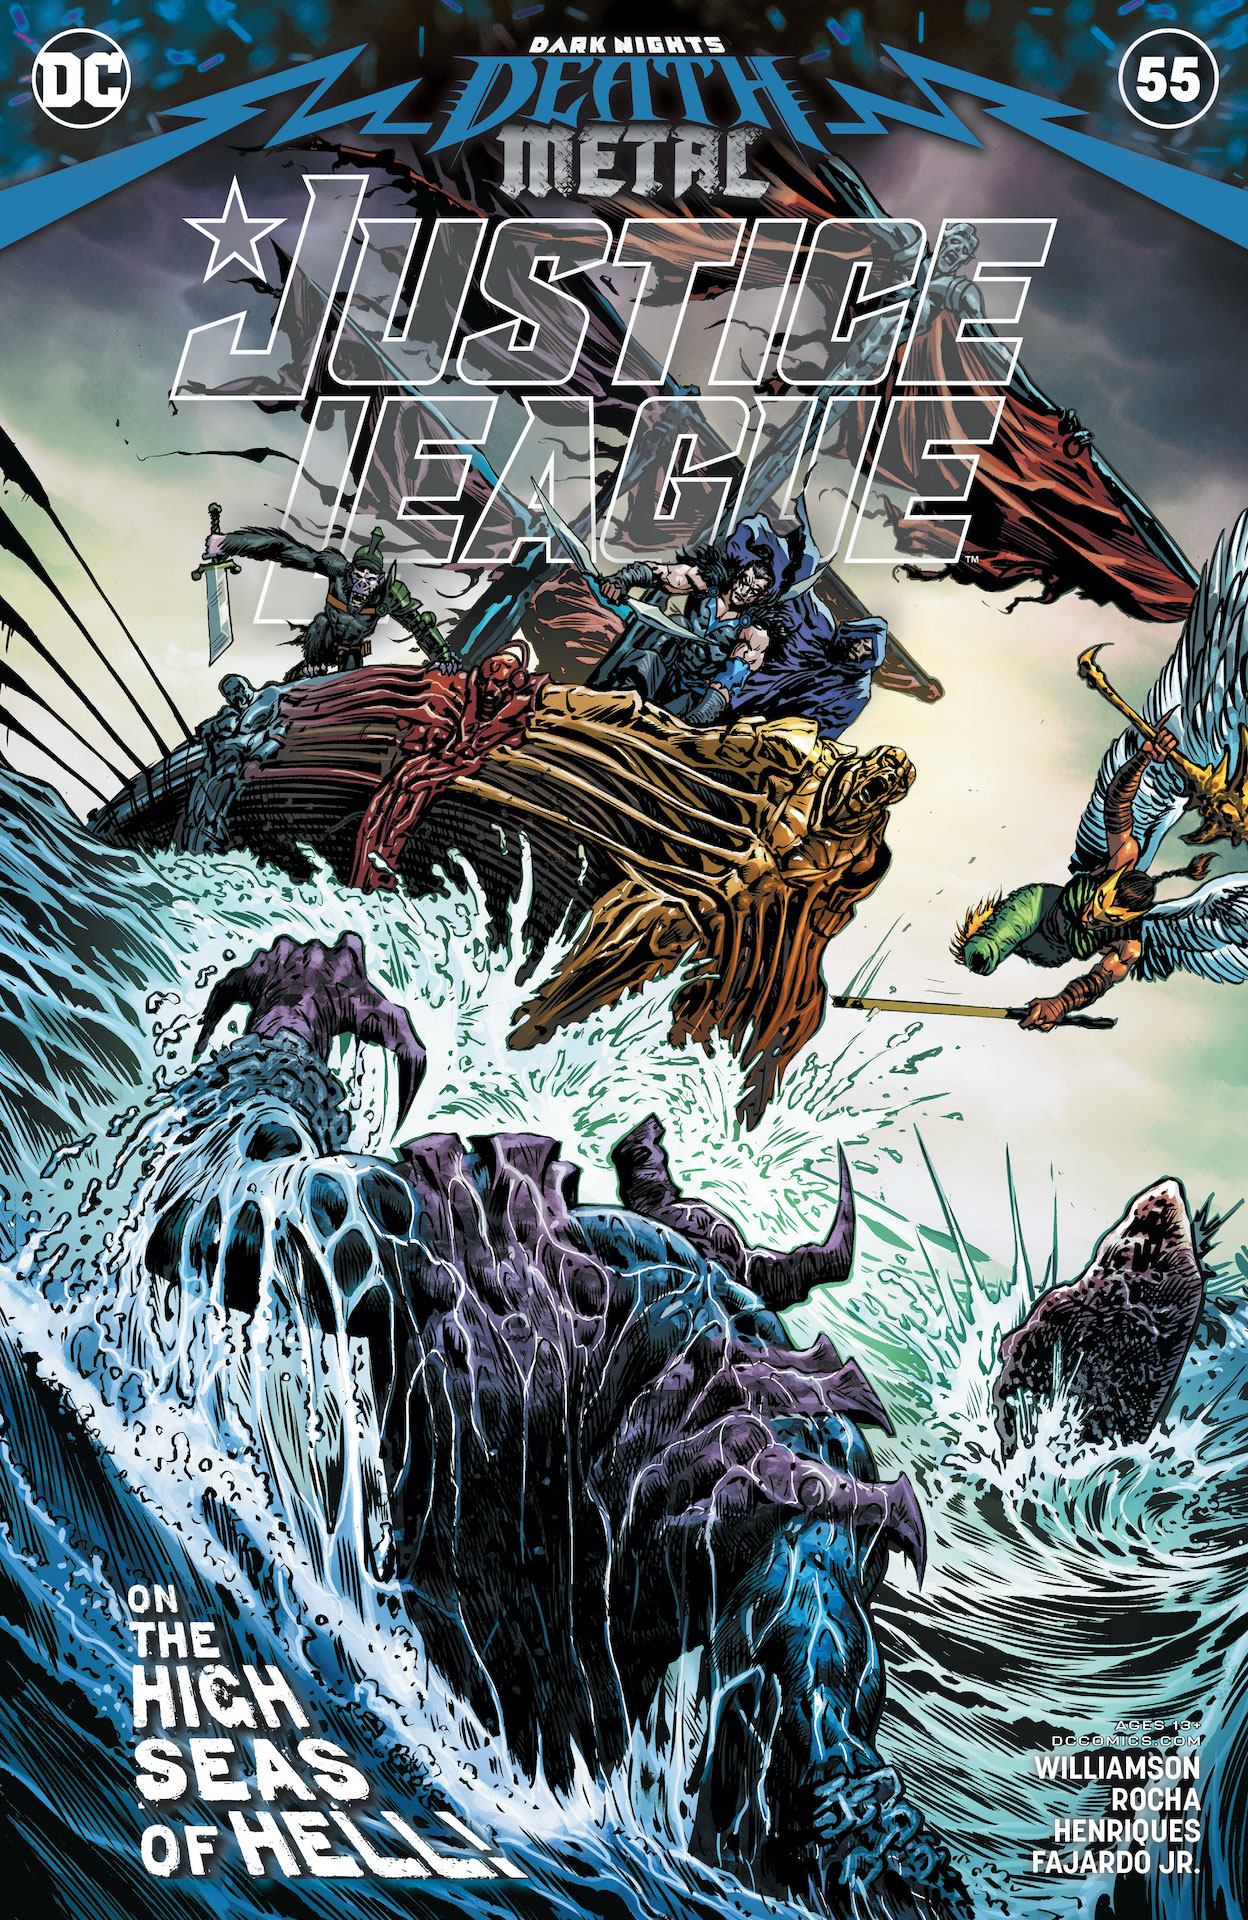 Justice League #55 cover